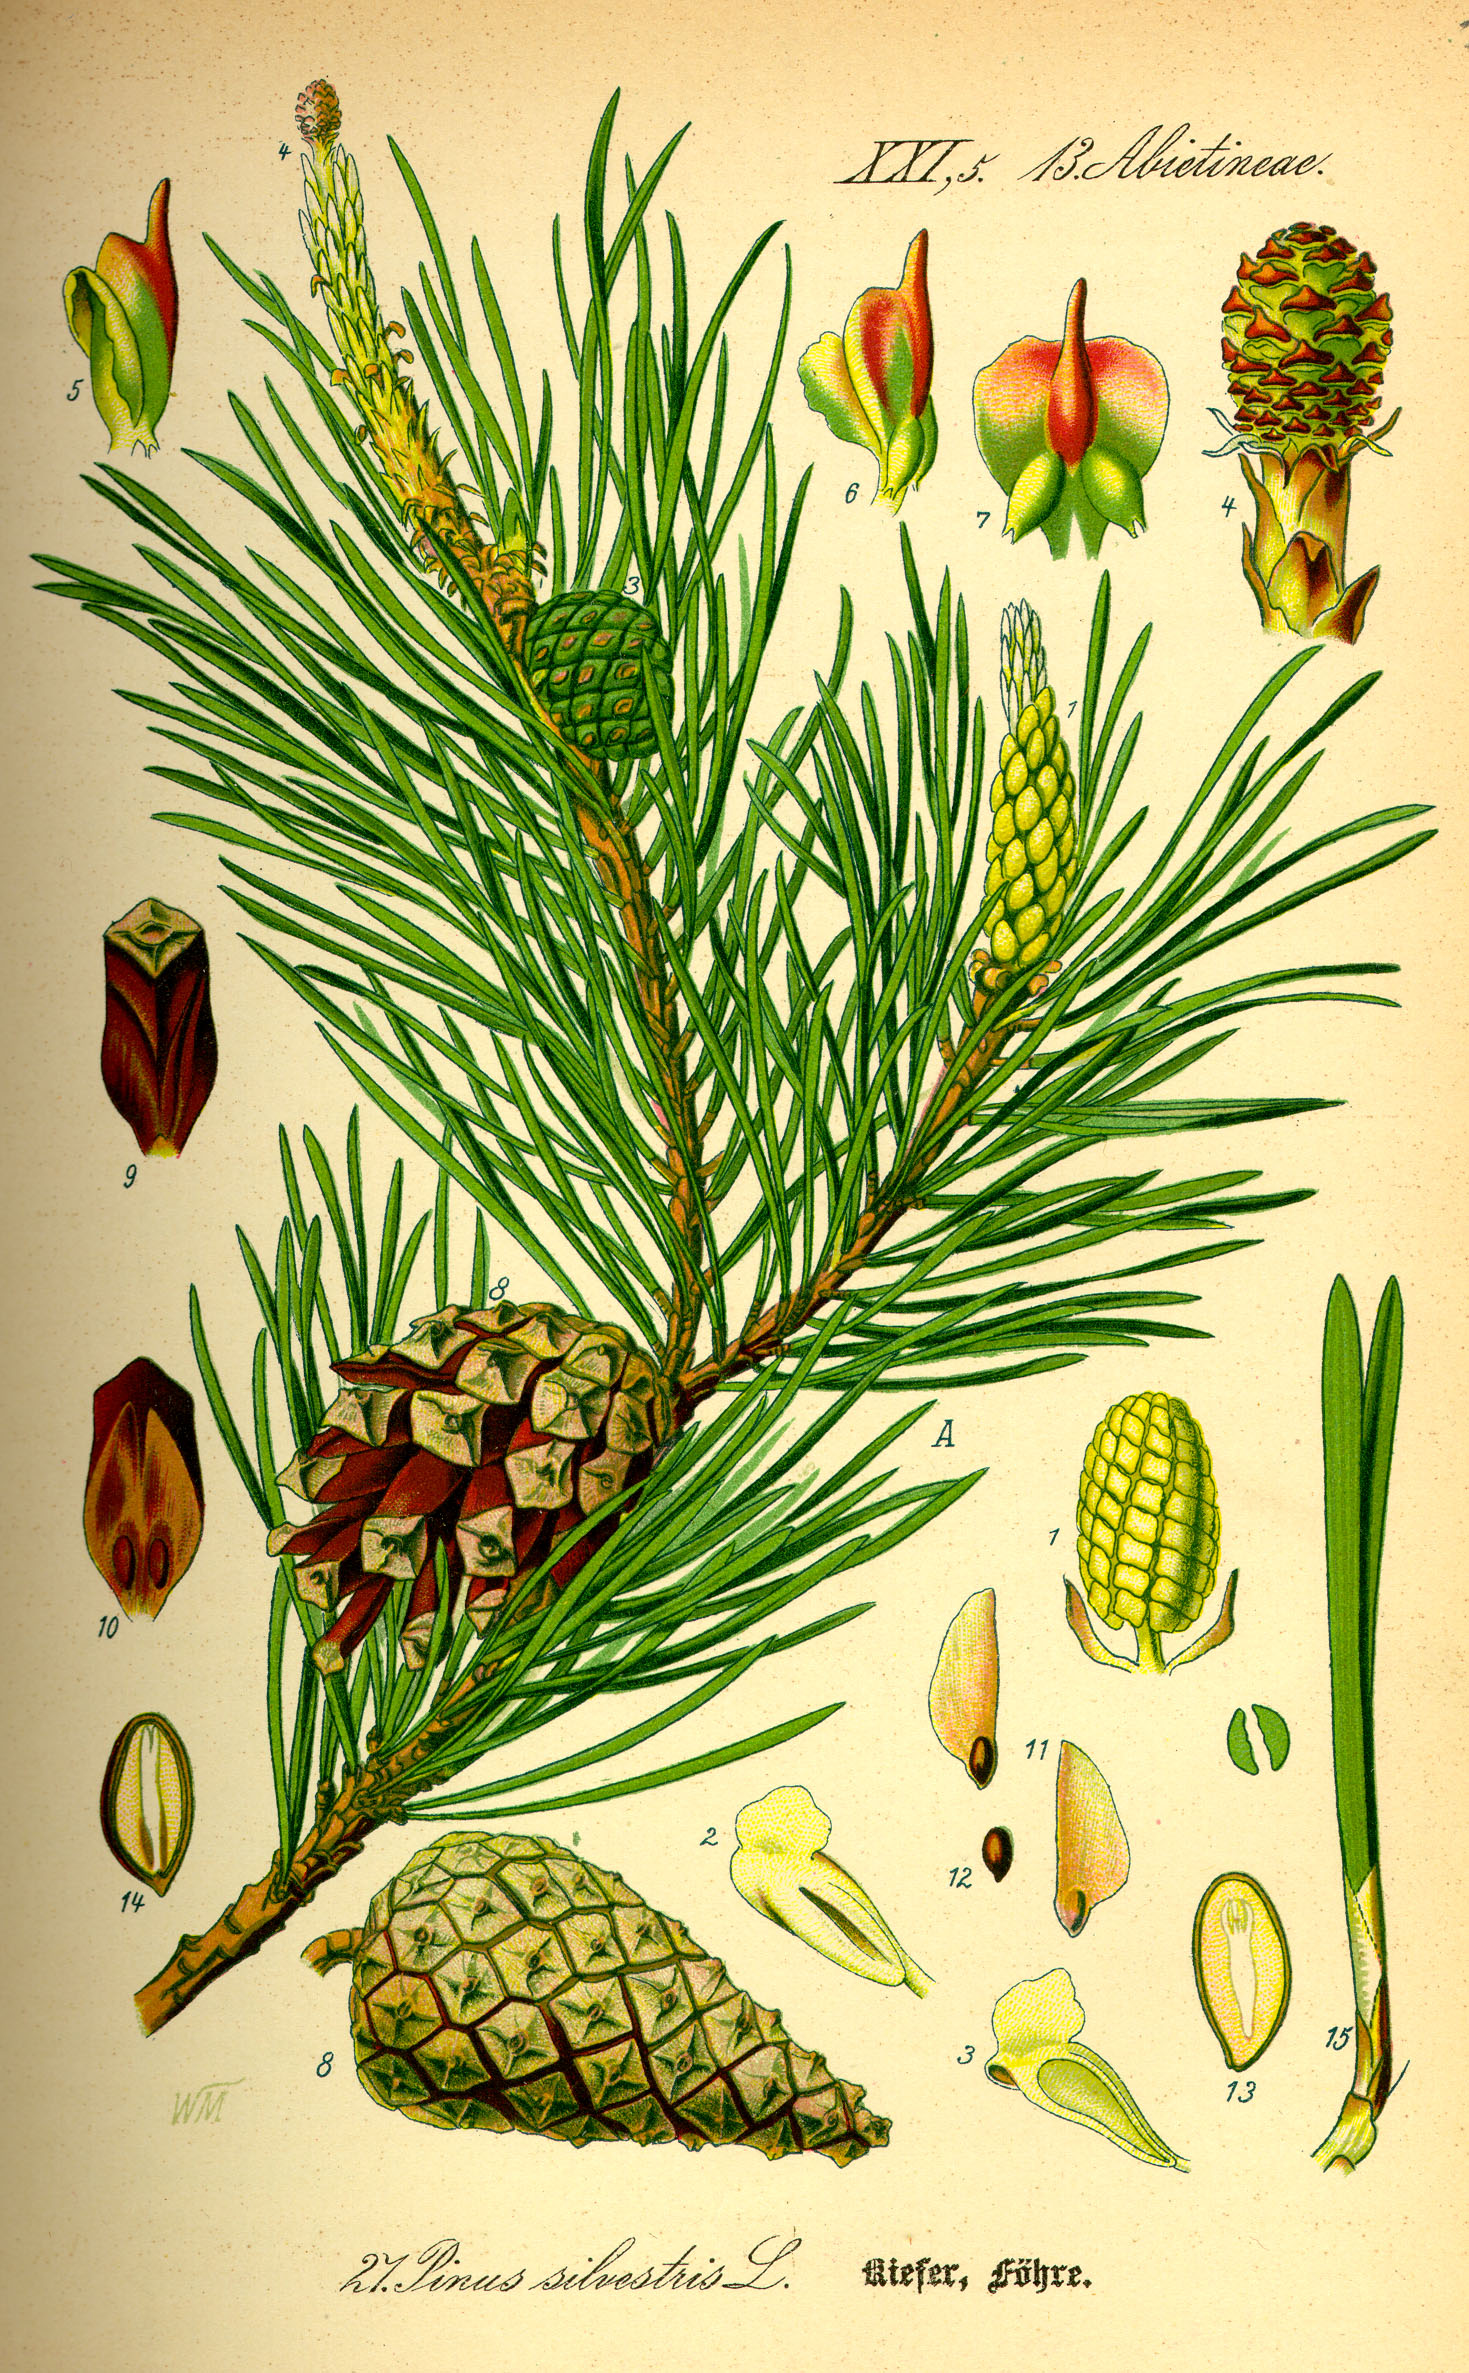 File:Illustration Pinus sylvestris0.jpg